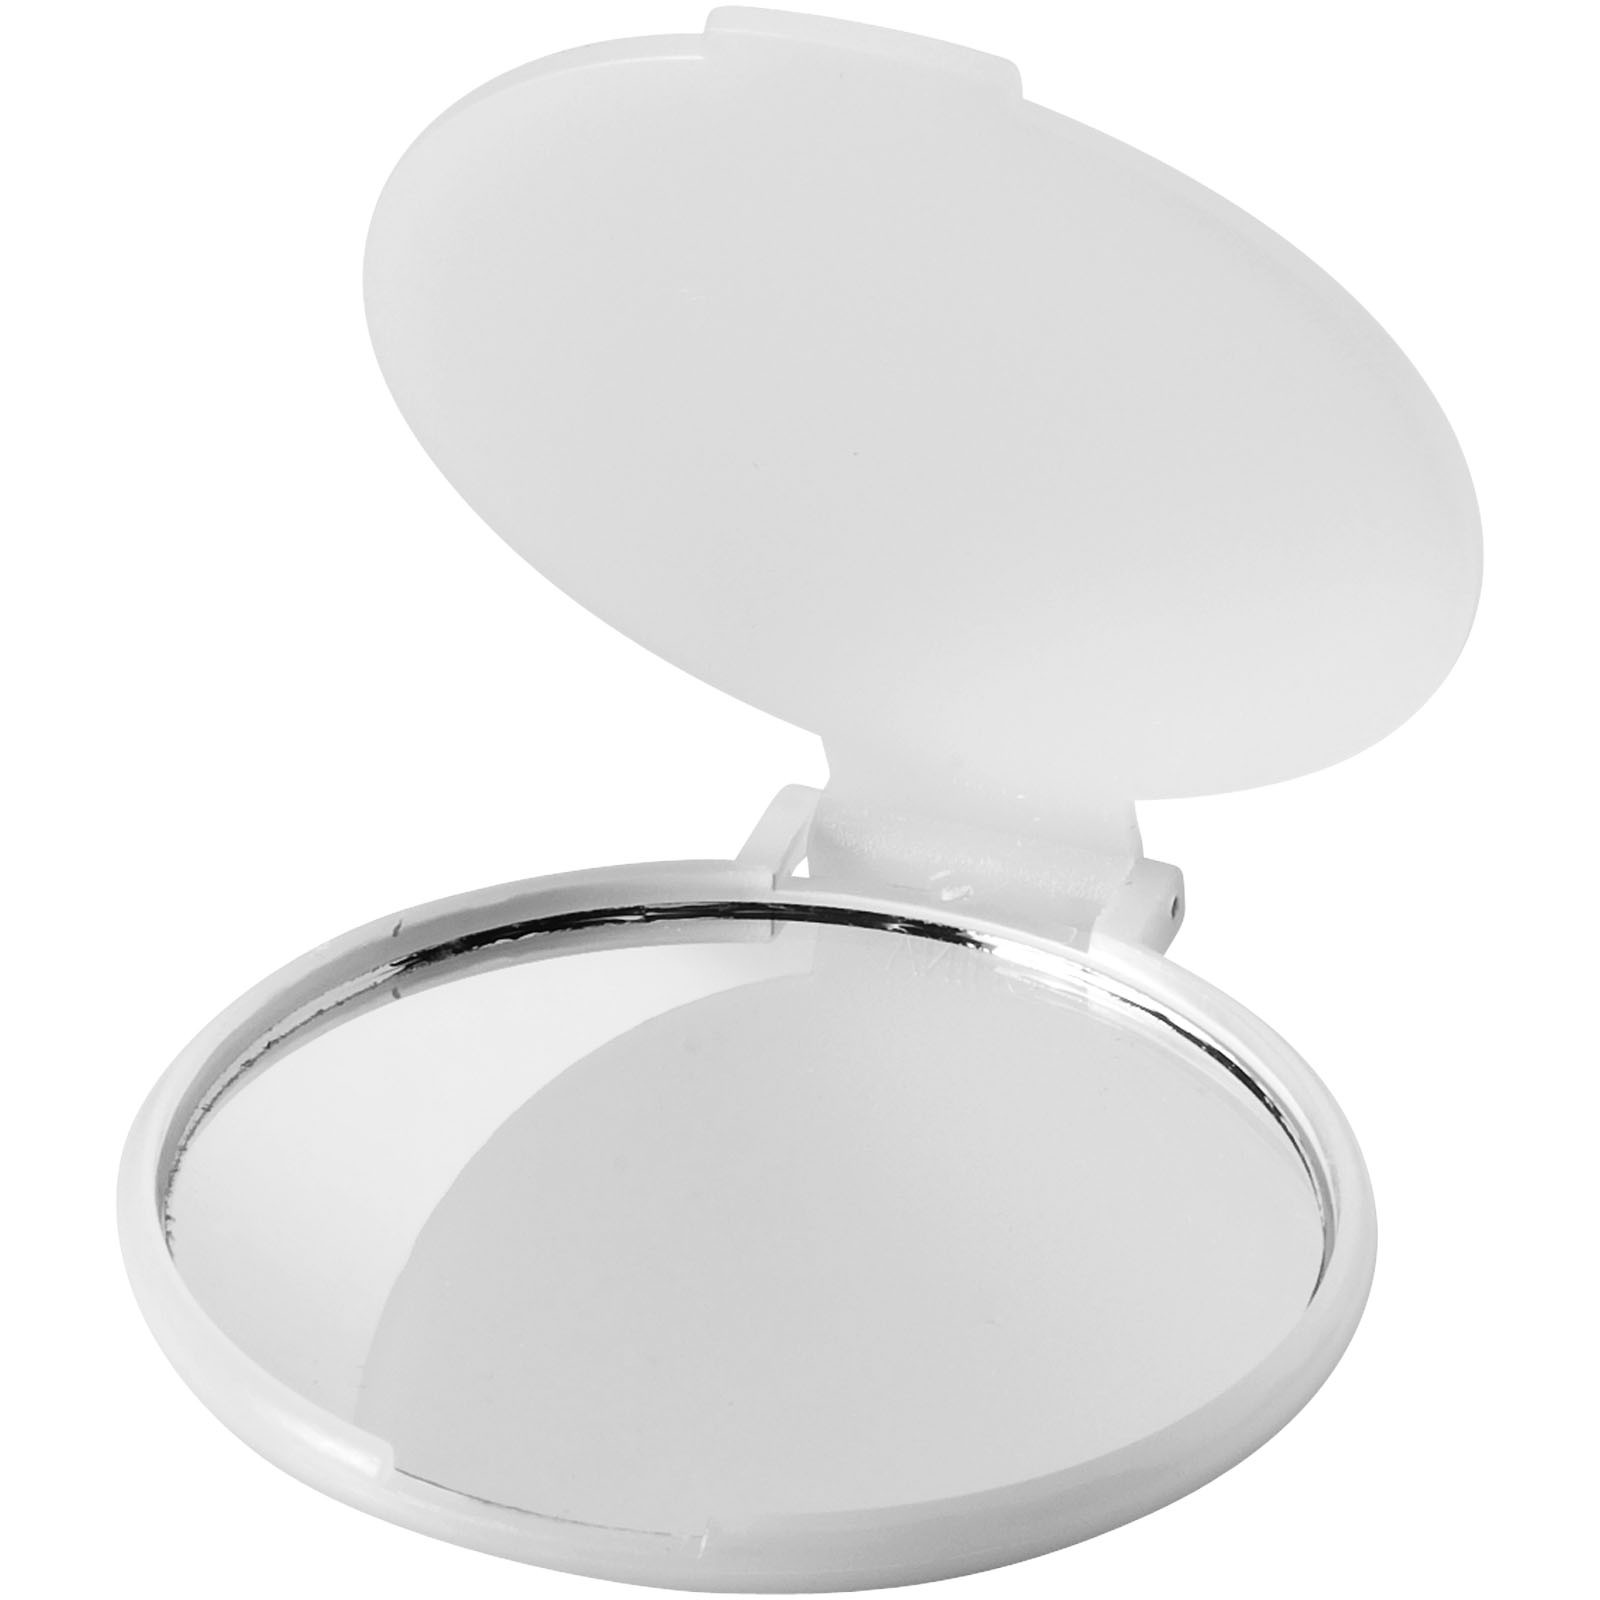 Carmen glamour mirror - Transparent white